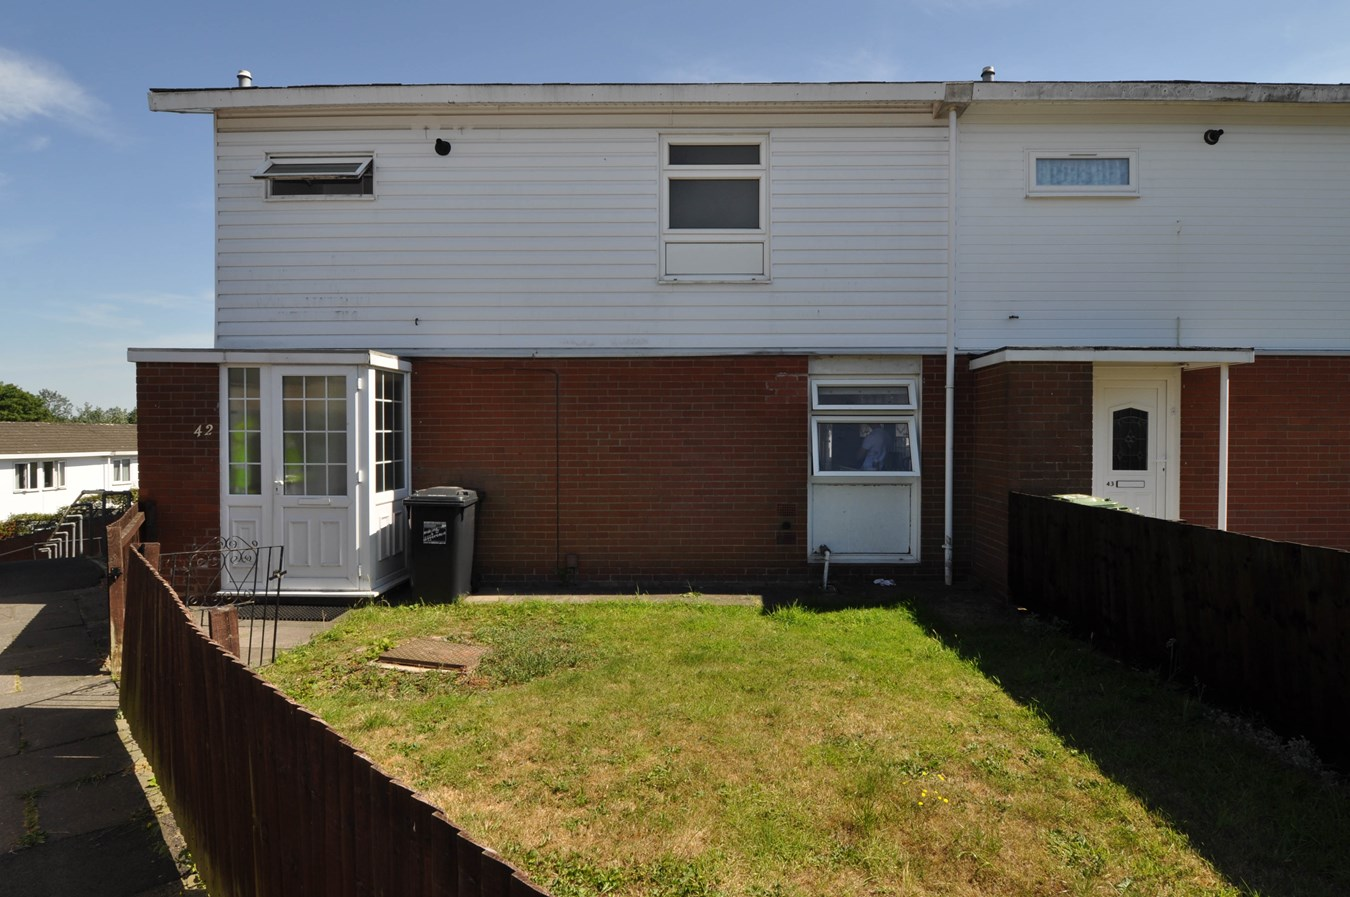 3 Bedroom Property For Sale In Flyford Close Redditch B98 Offers In Excess Of 140000